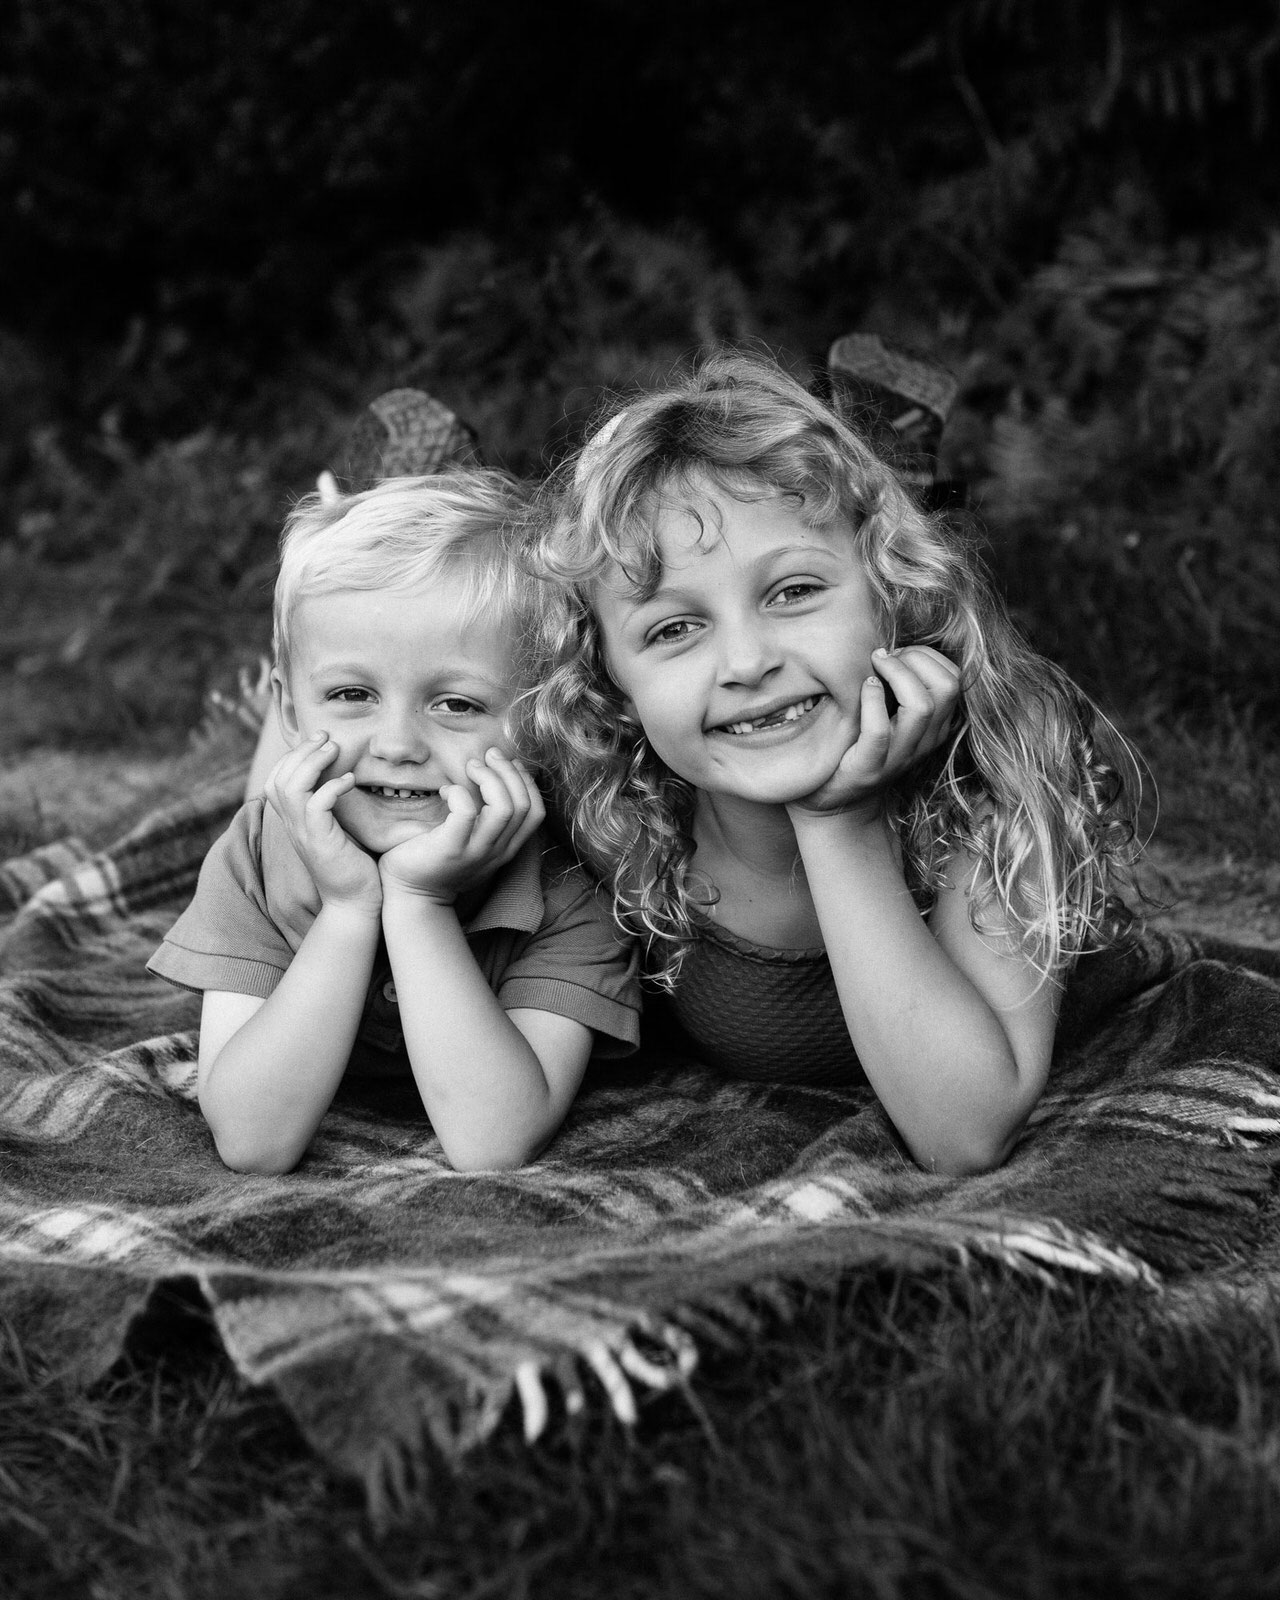 Siblings pose for photo on a blanket